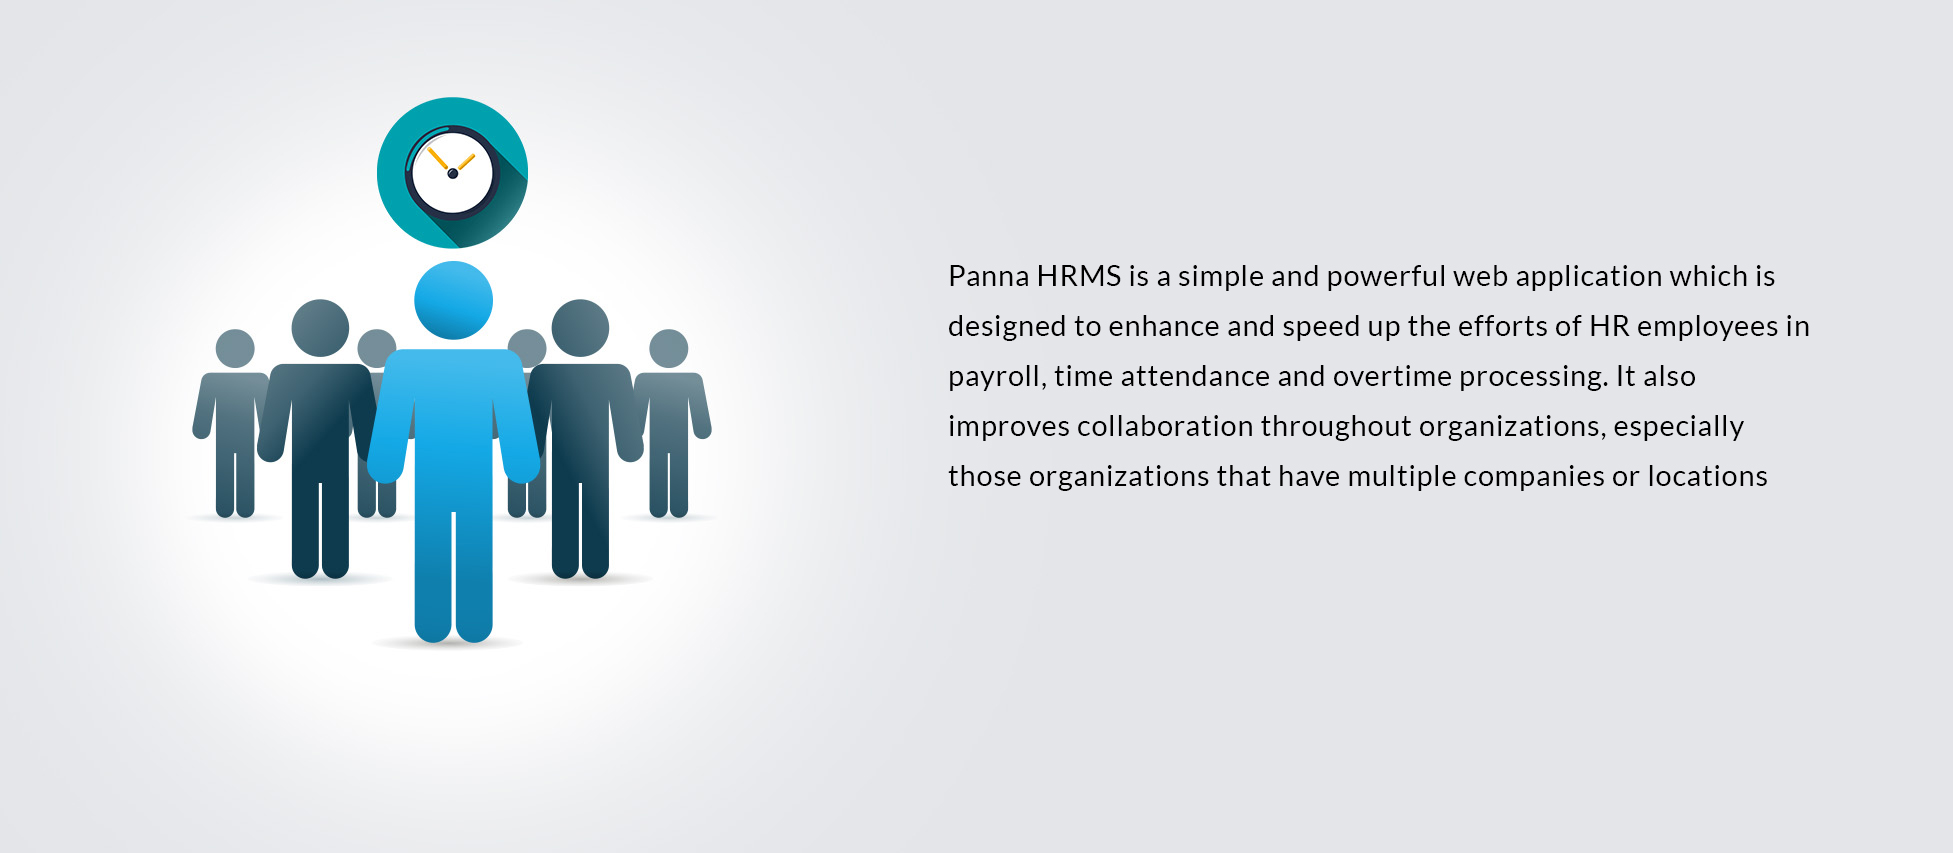 Panna HRMS is a simple and powerful web application which is designed to enhance and speed up the efforts of HR employees in payroll, time attendance and overtime processing. It also improves collaboration throughout organizations, especially those organizations that have multiple companies or locations